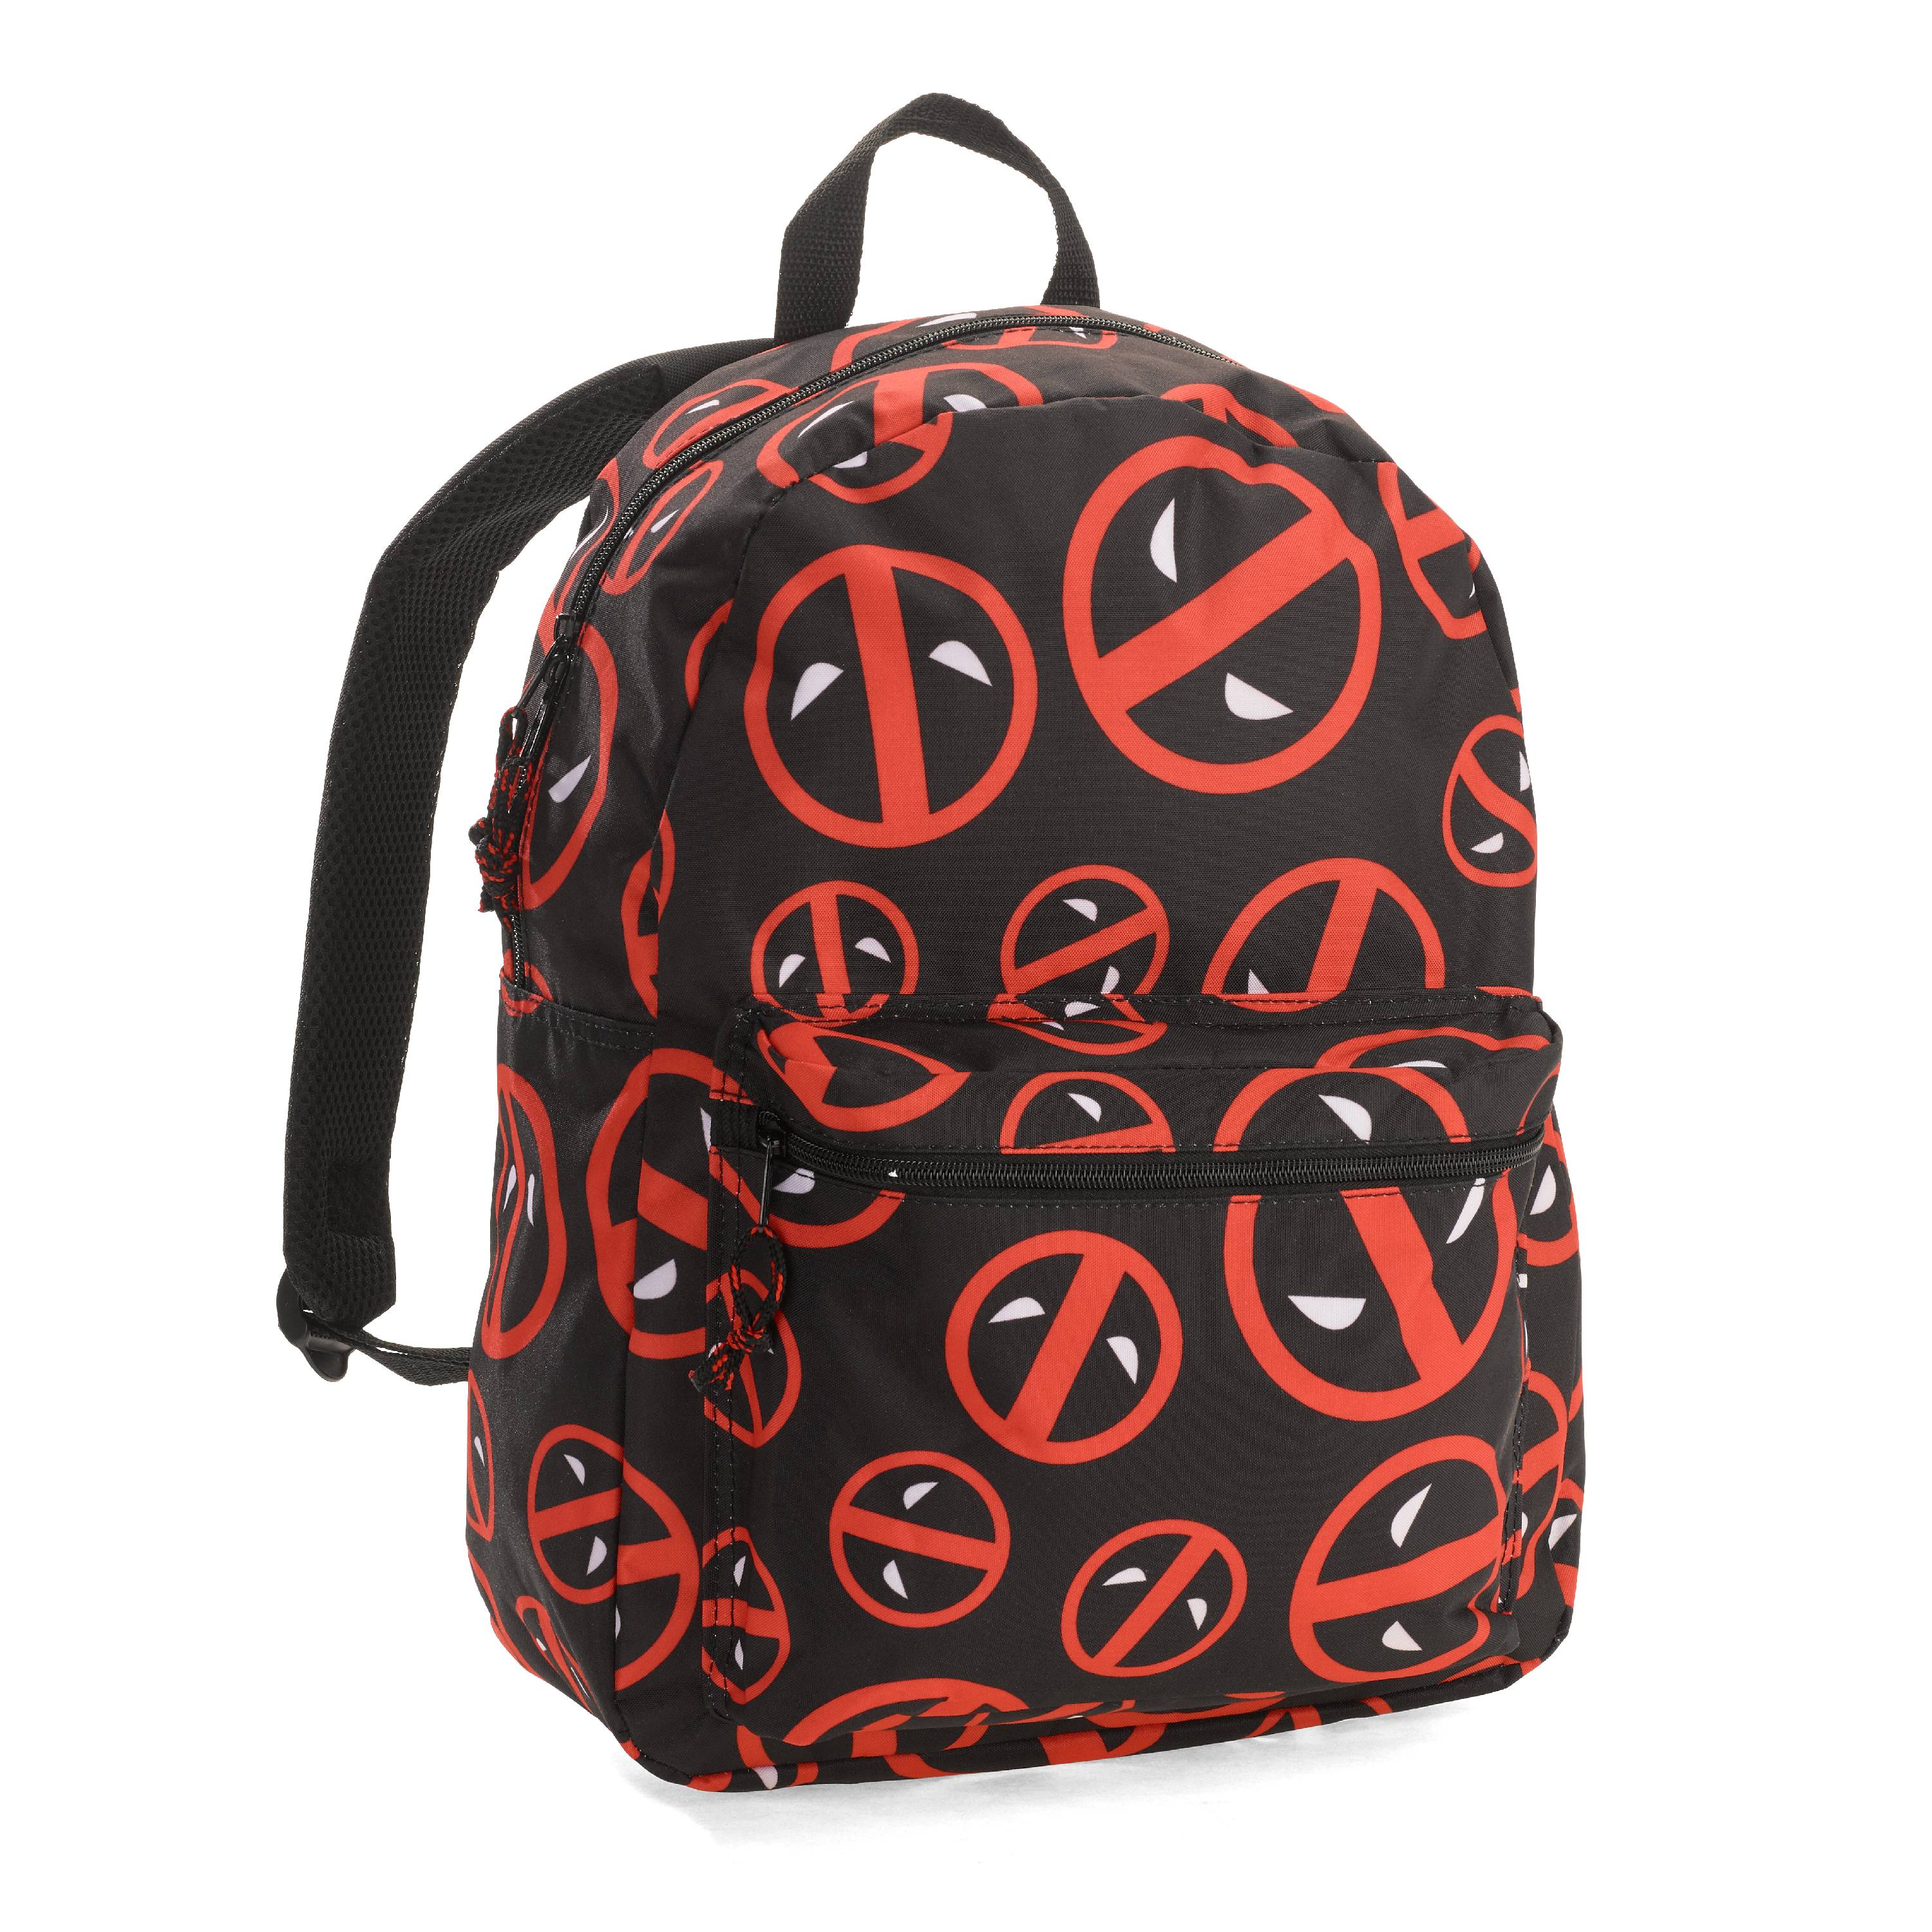 Deadpool Comic Backpack